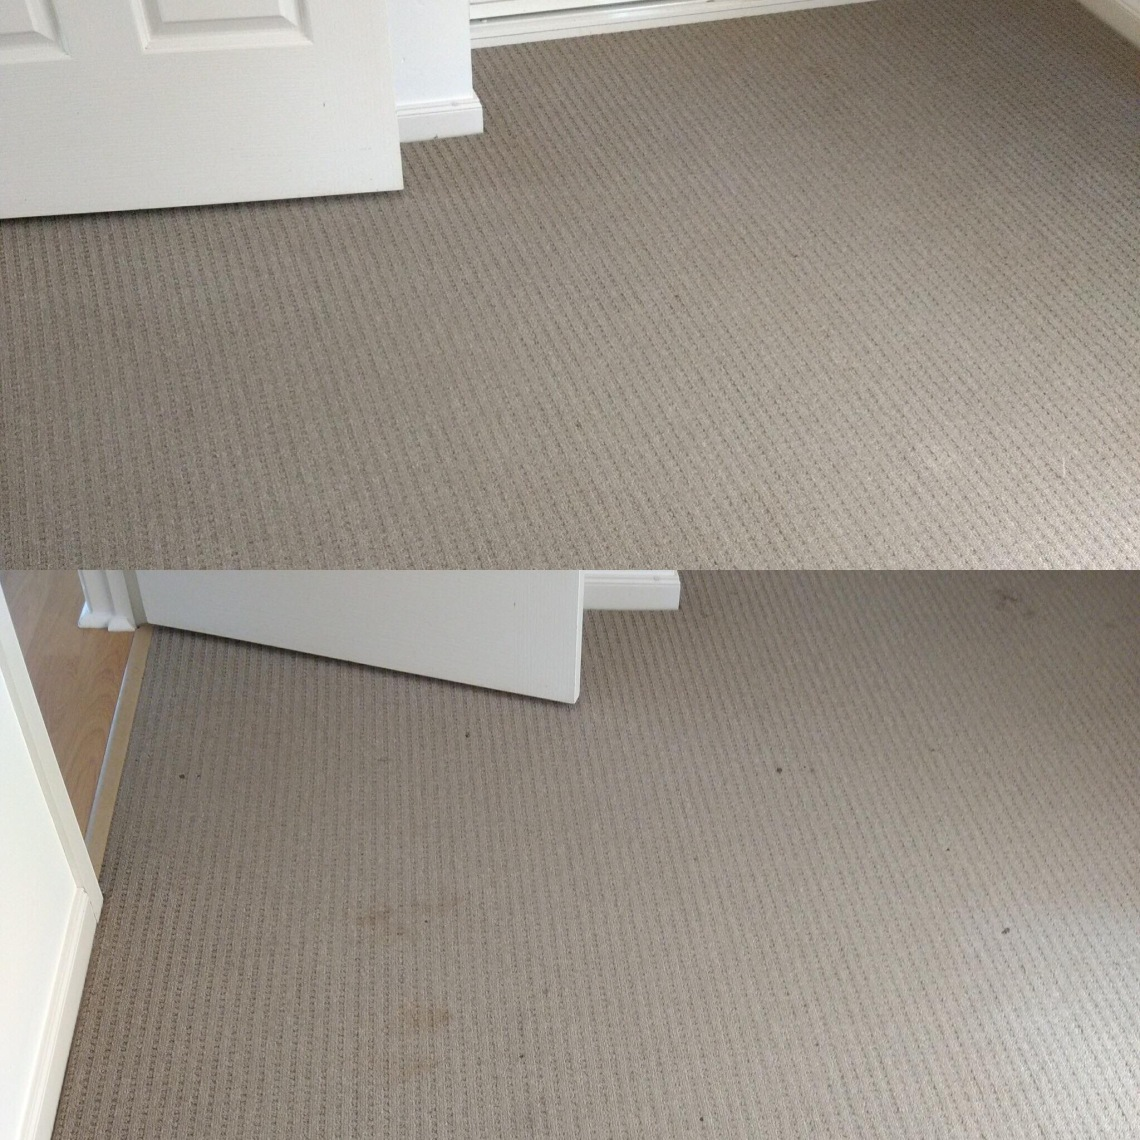 Loxton Professional Carpet Cleaning